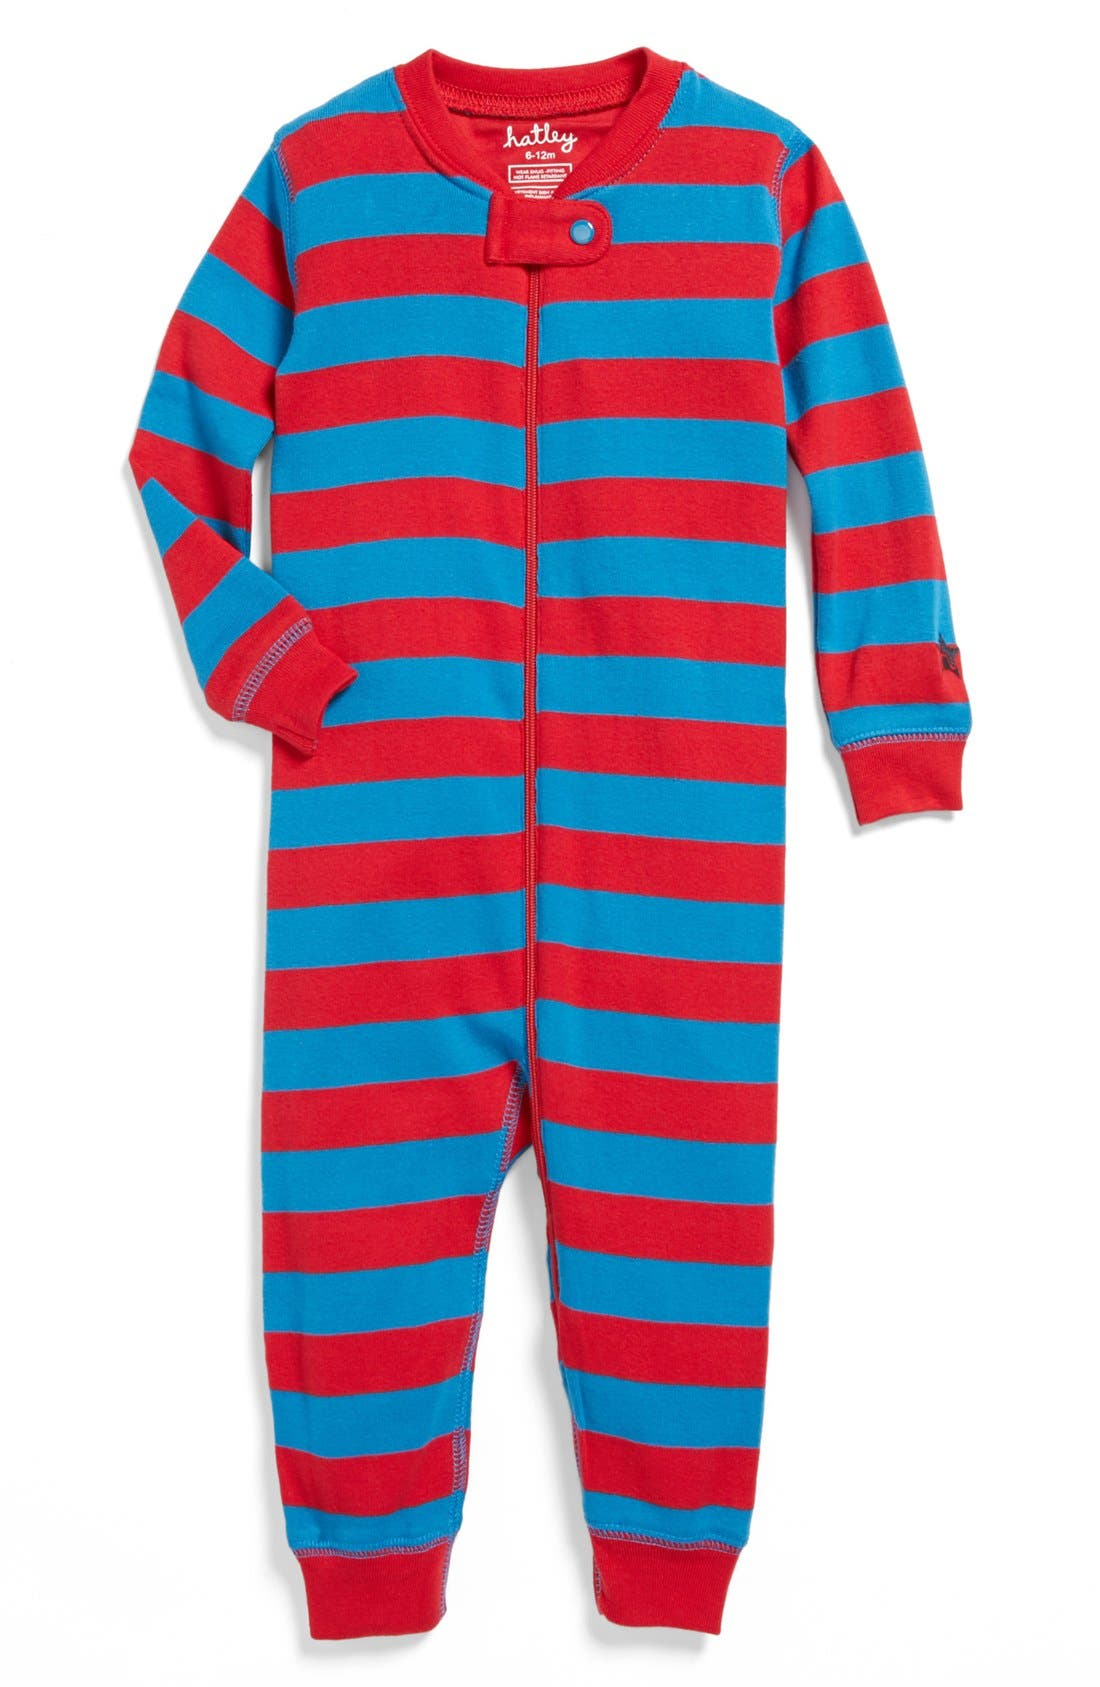 Alternate Image 1 Selected - Hatley 'Electric Stripes' Romper (Baby)